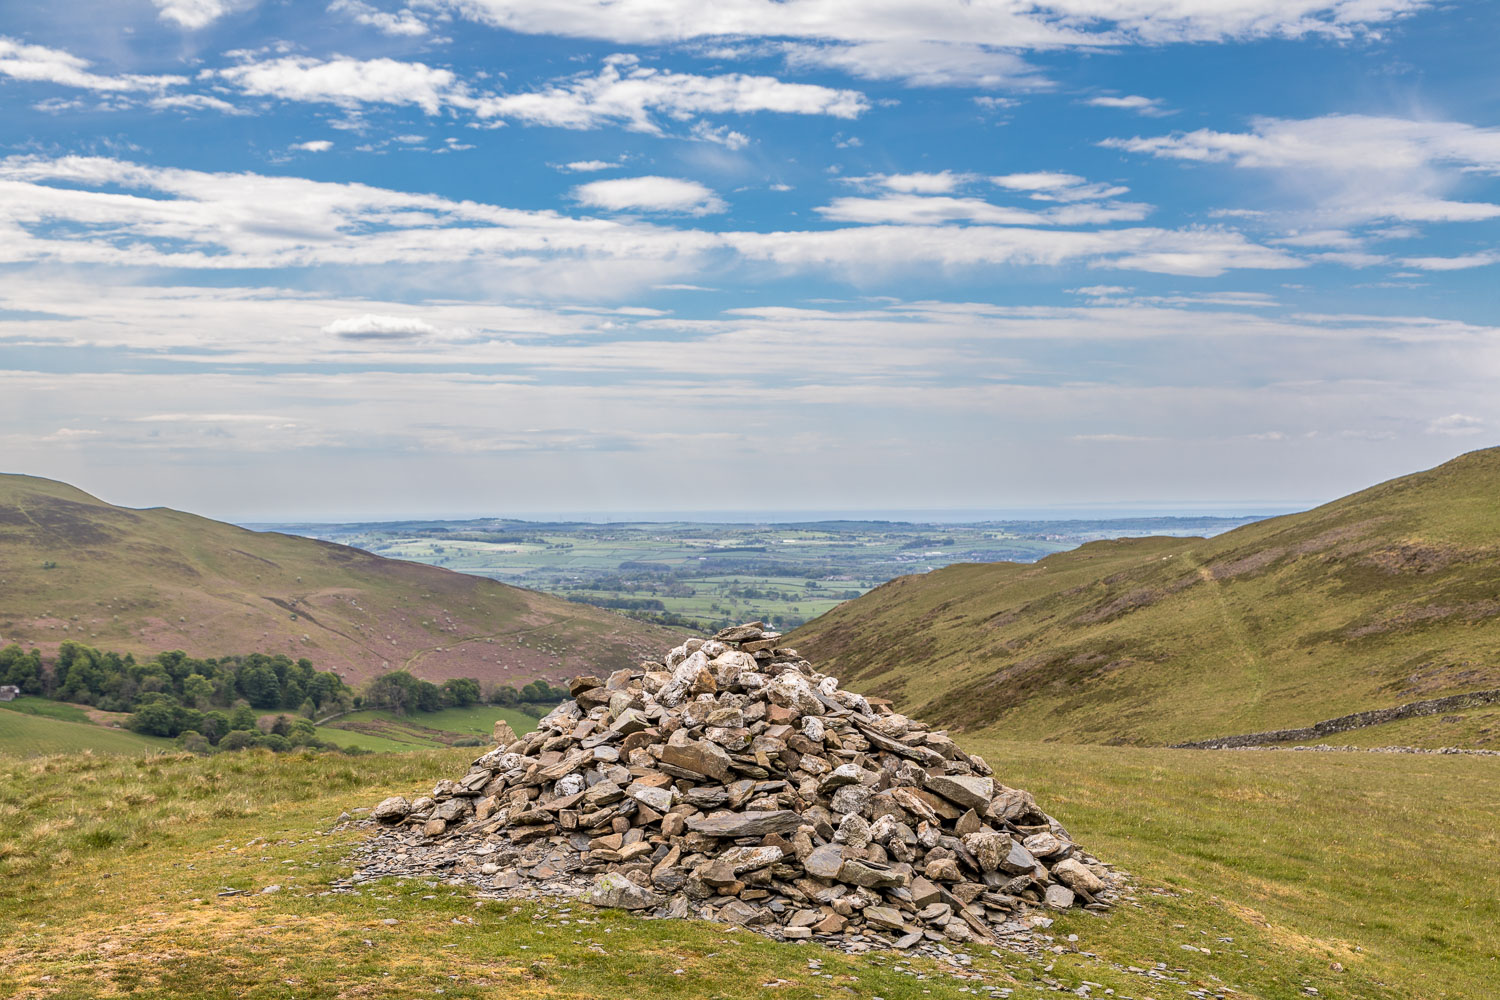 Sale Fell summit